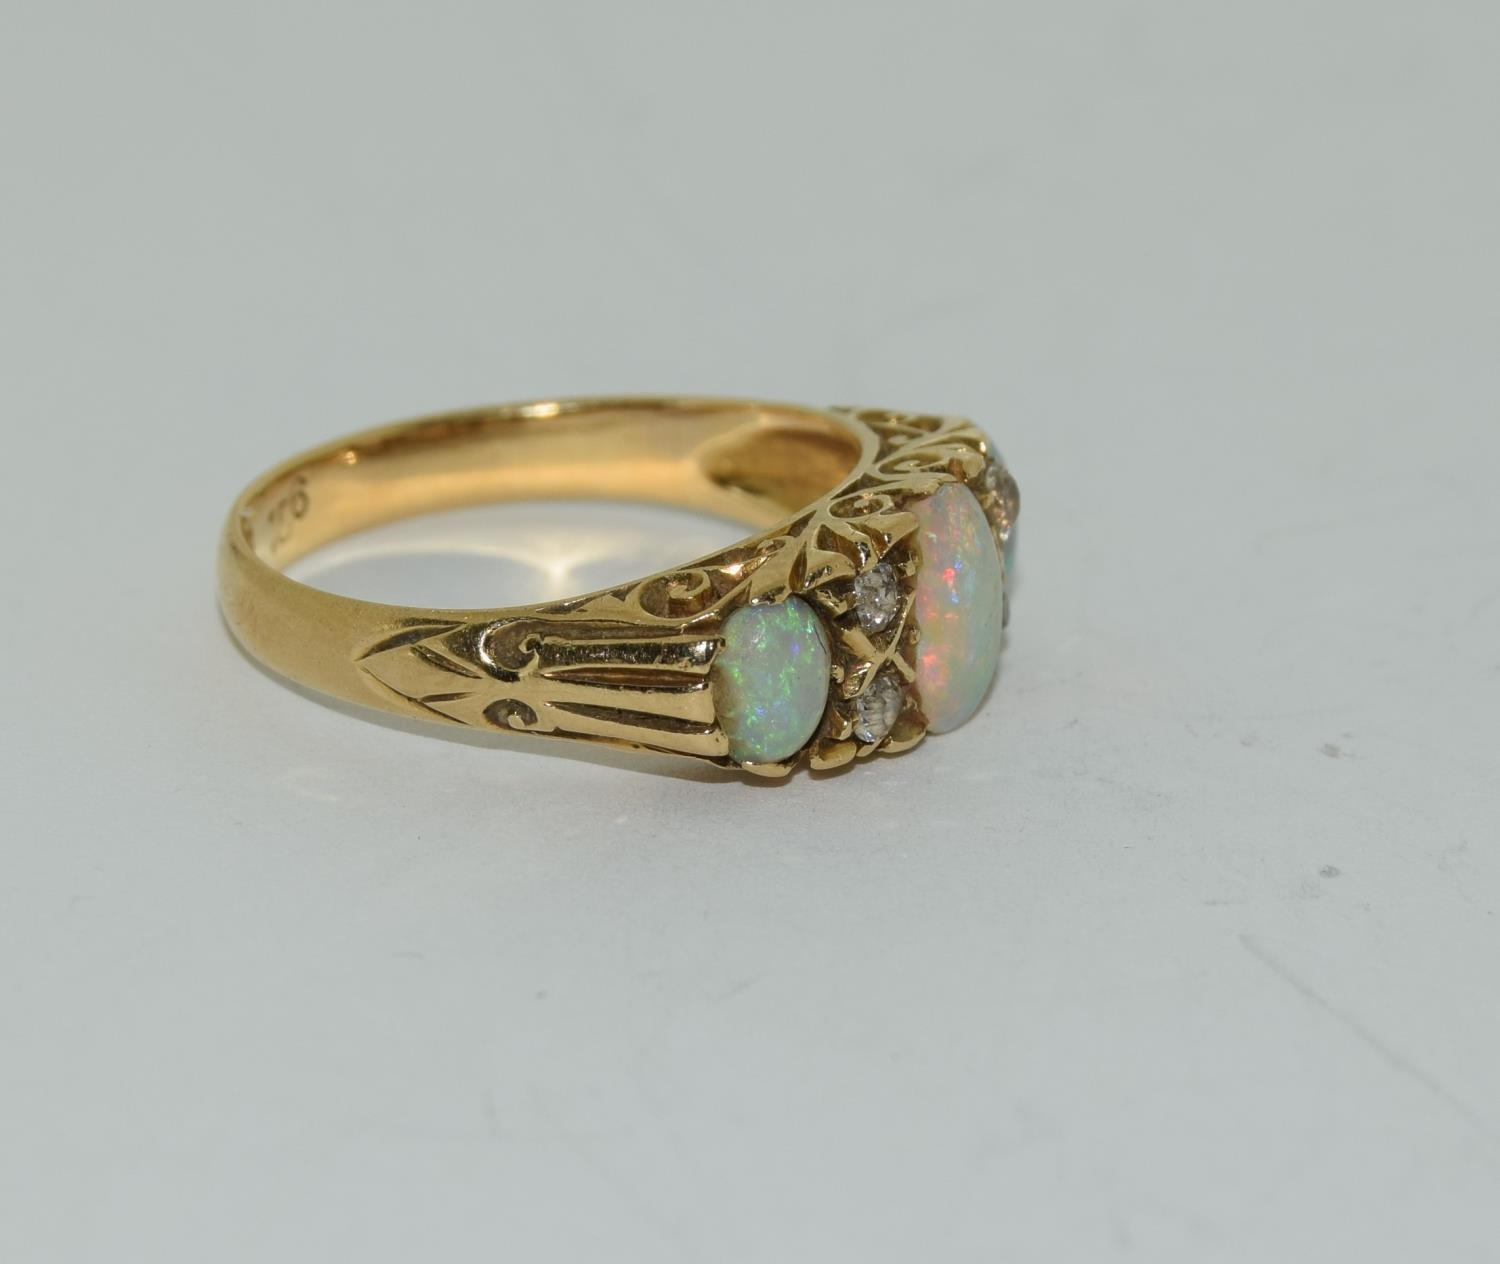 18ct gold ladies 3 stone opal and diamond ring size M - Image 5 of 5